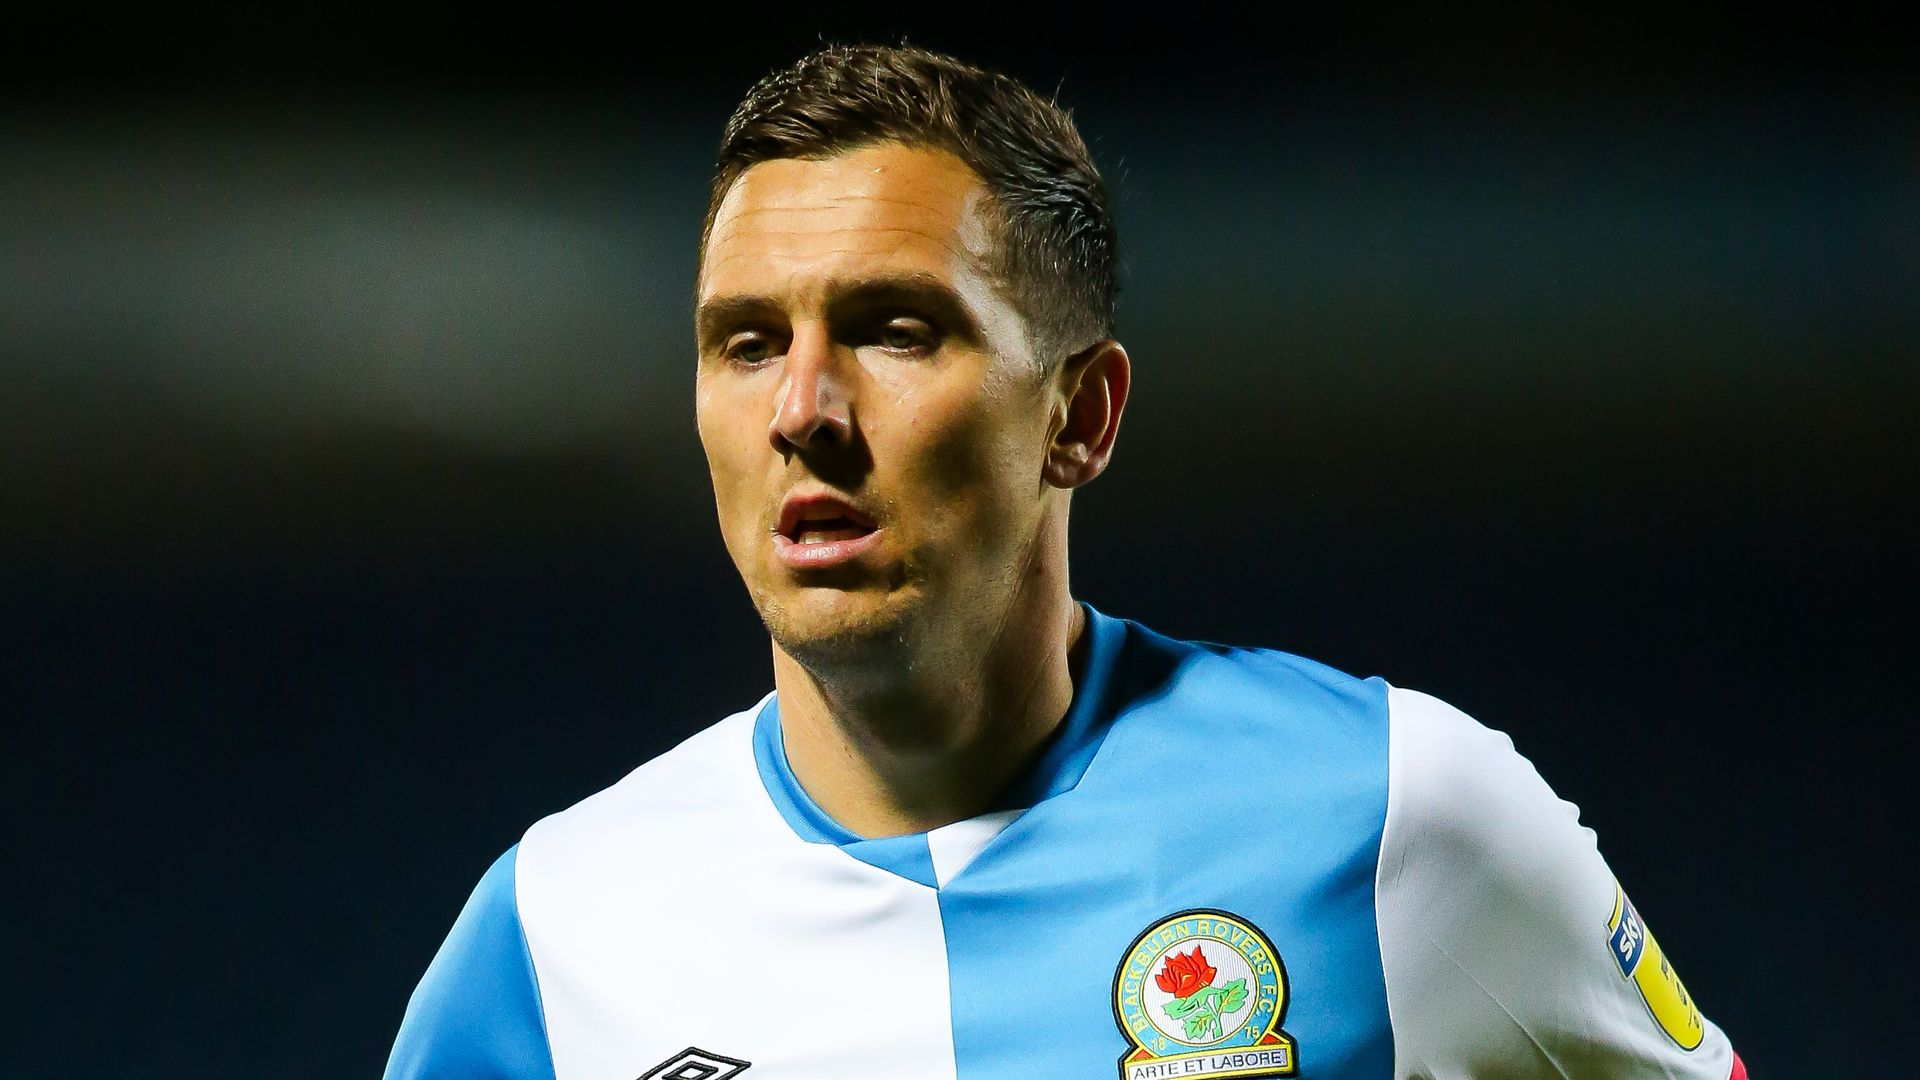 Downing announces retirement from football